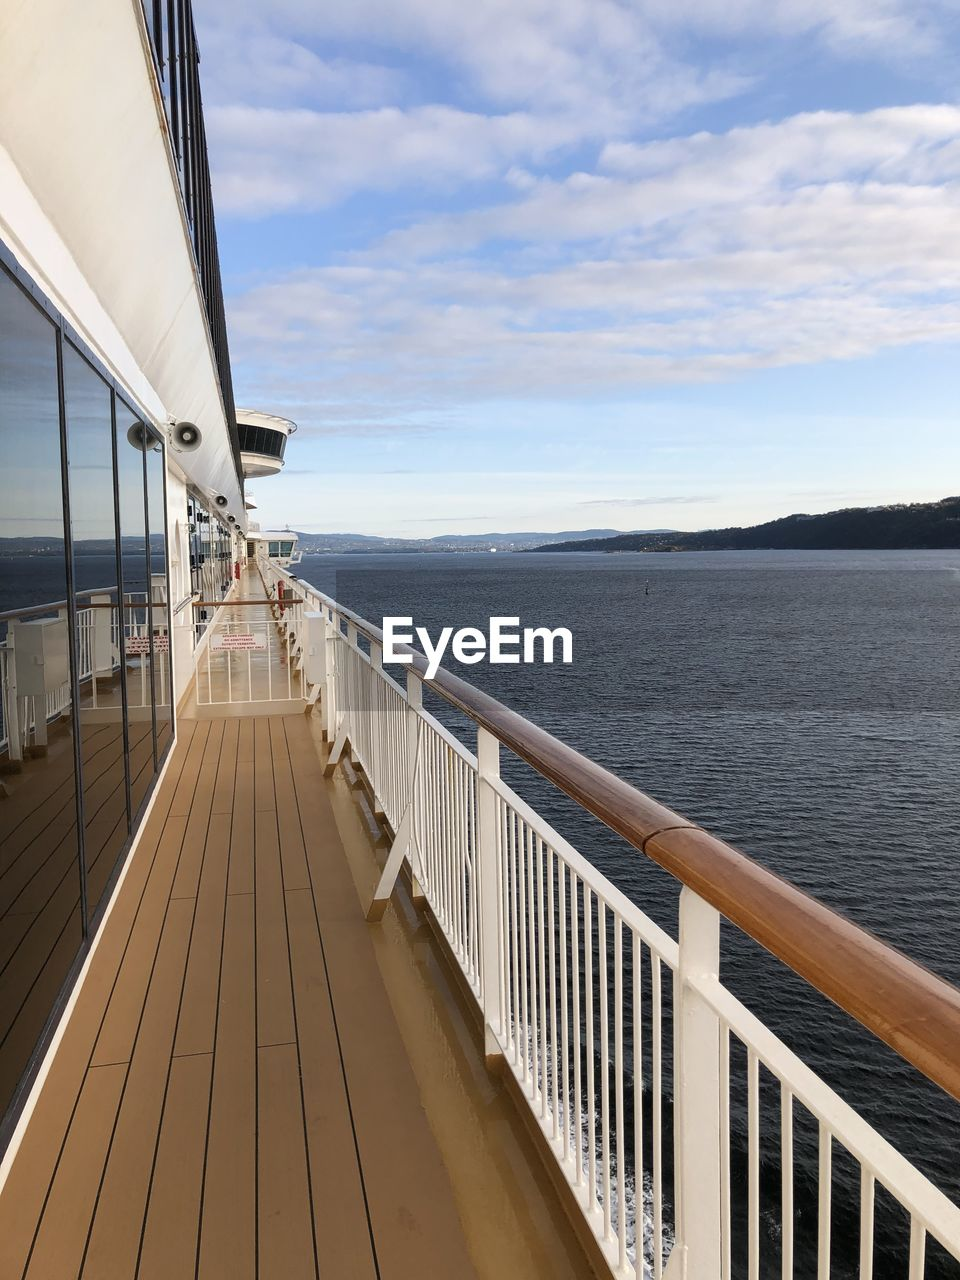 water, sky, railing, sea, cloud - sky, transportation, nature, scenics - nature, architecture, nautical vessel, day, built structure, beauty in nature, deck, boat deck, direction, mode of transportation, travel, the way forward, outdoors, no people, cruise ship, diminishing perspective